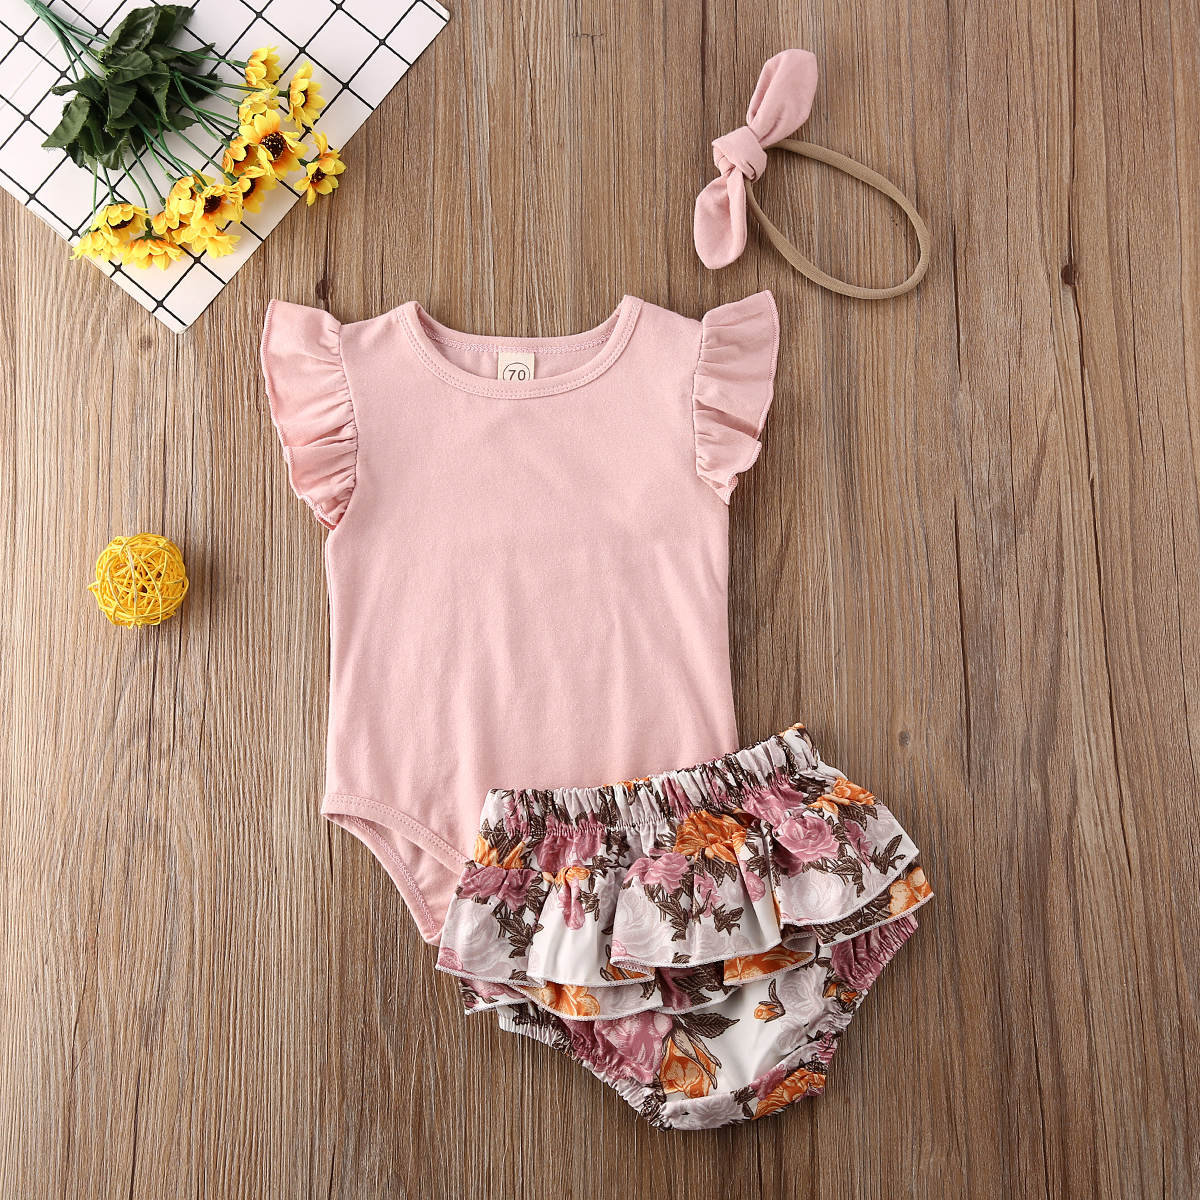 Pudcoco Newborn Baby Girl Clothes Fly Sleeve Solid Color Romper Tops Flower Print Ruffle Short Pants Headband 3Pcs Outfits Set